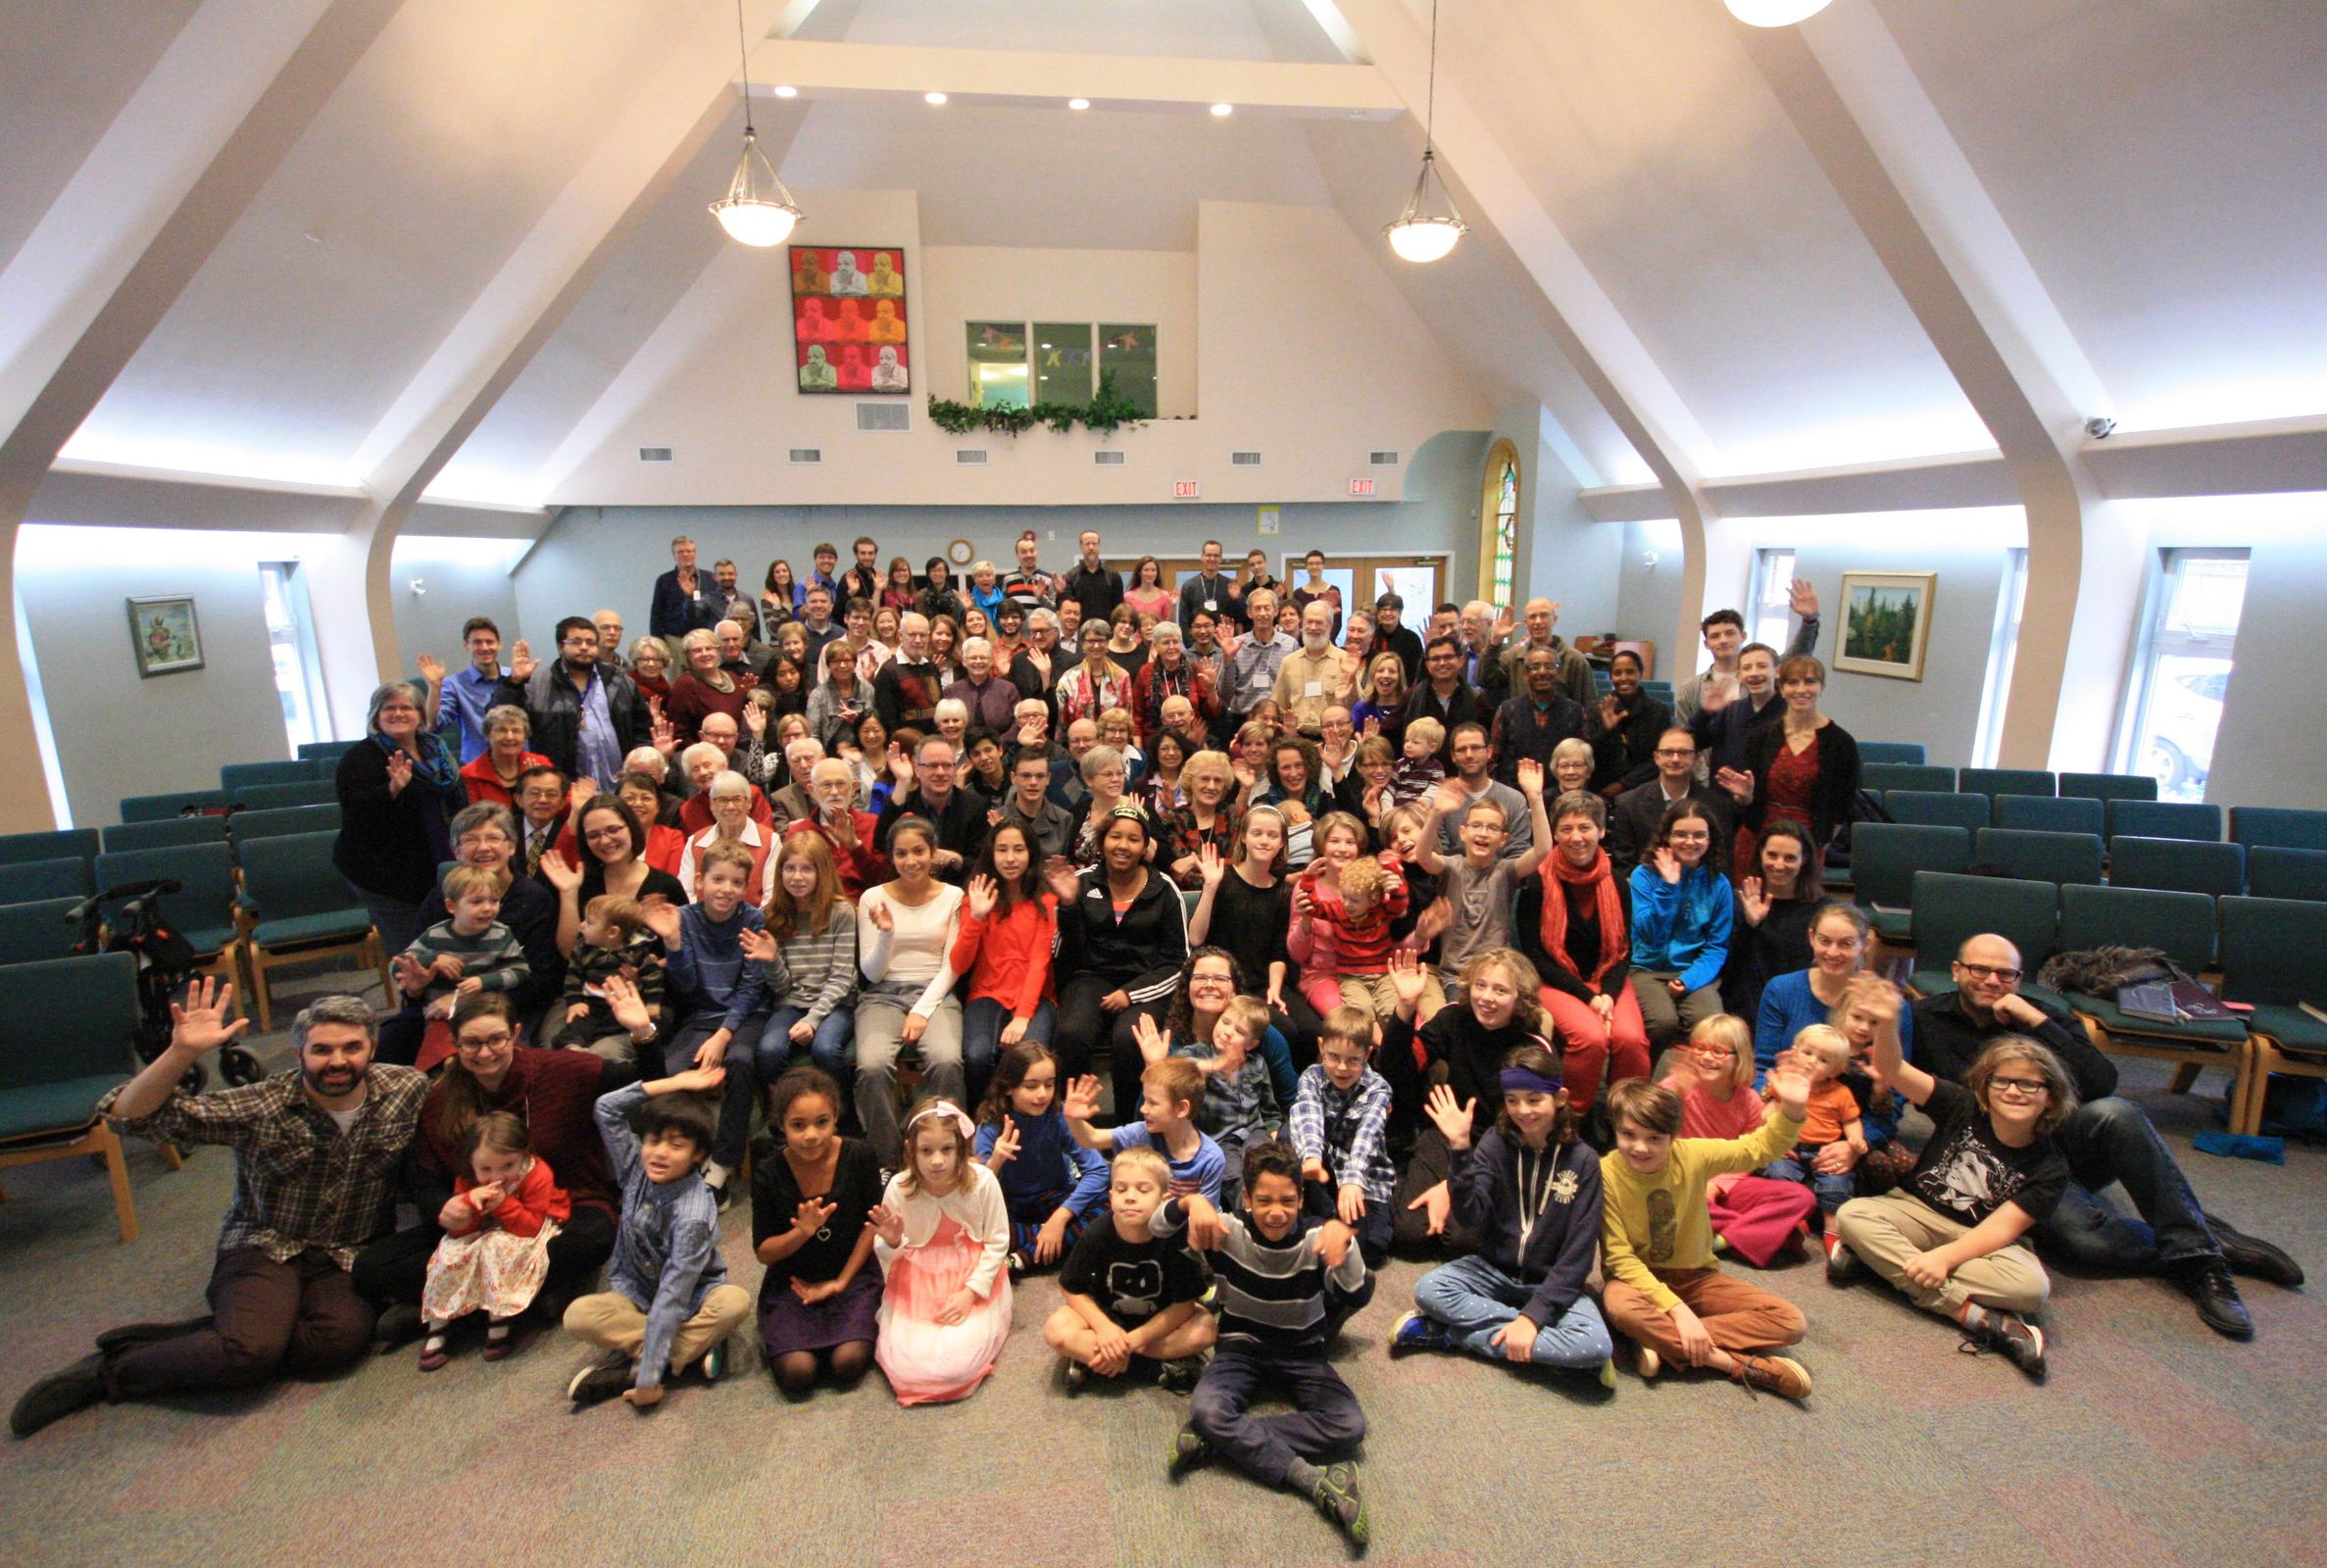 Christmas 2015 congregation photo